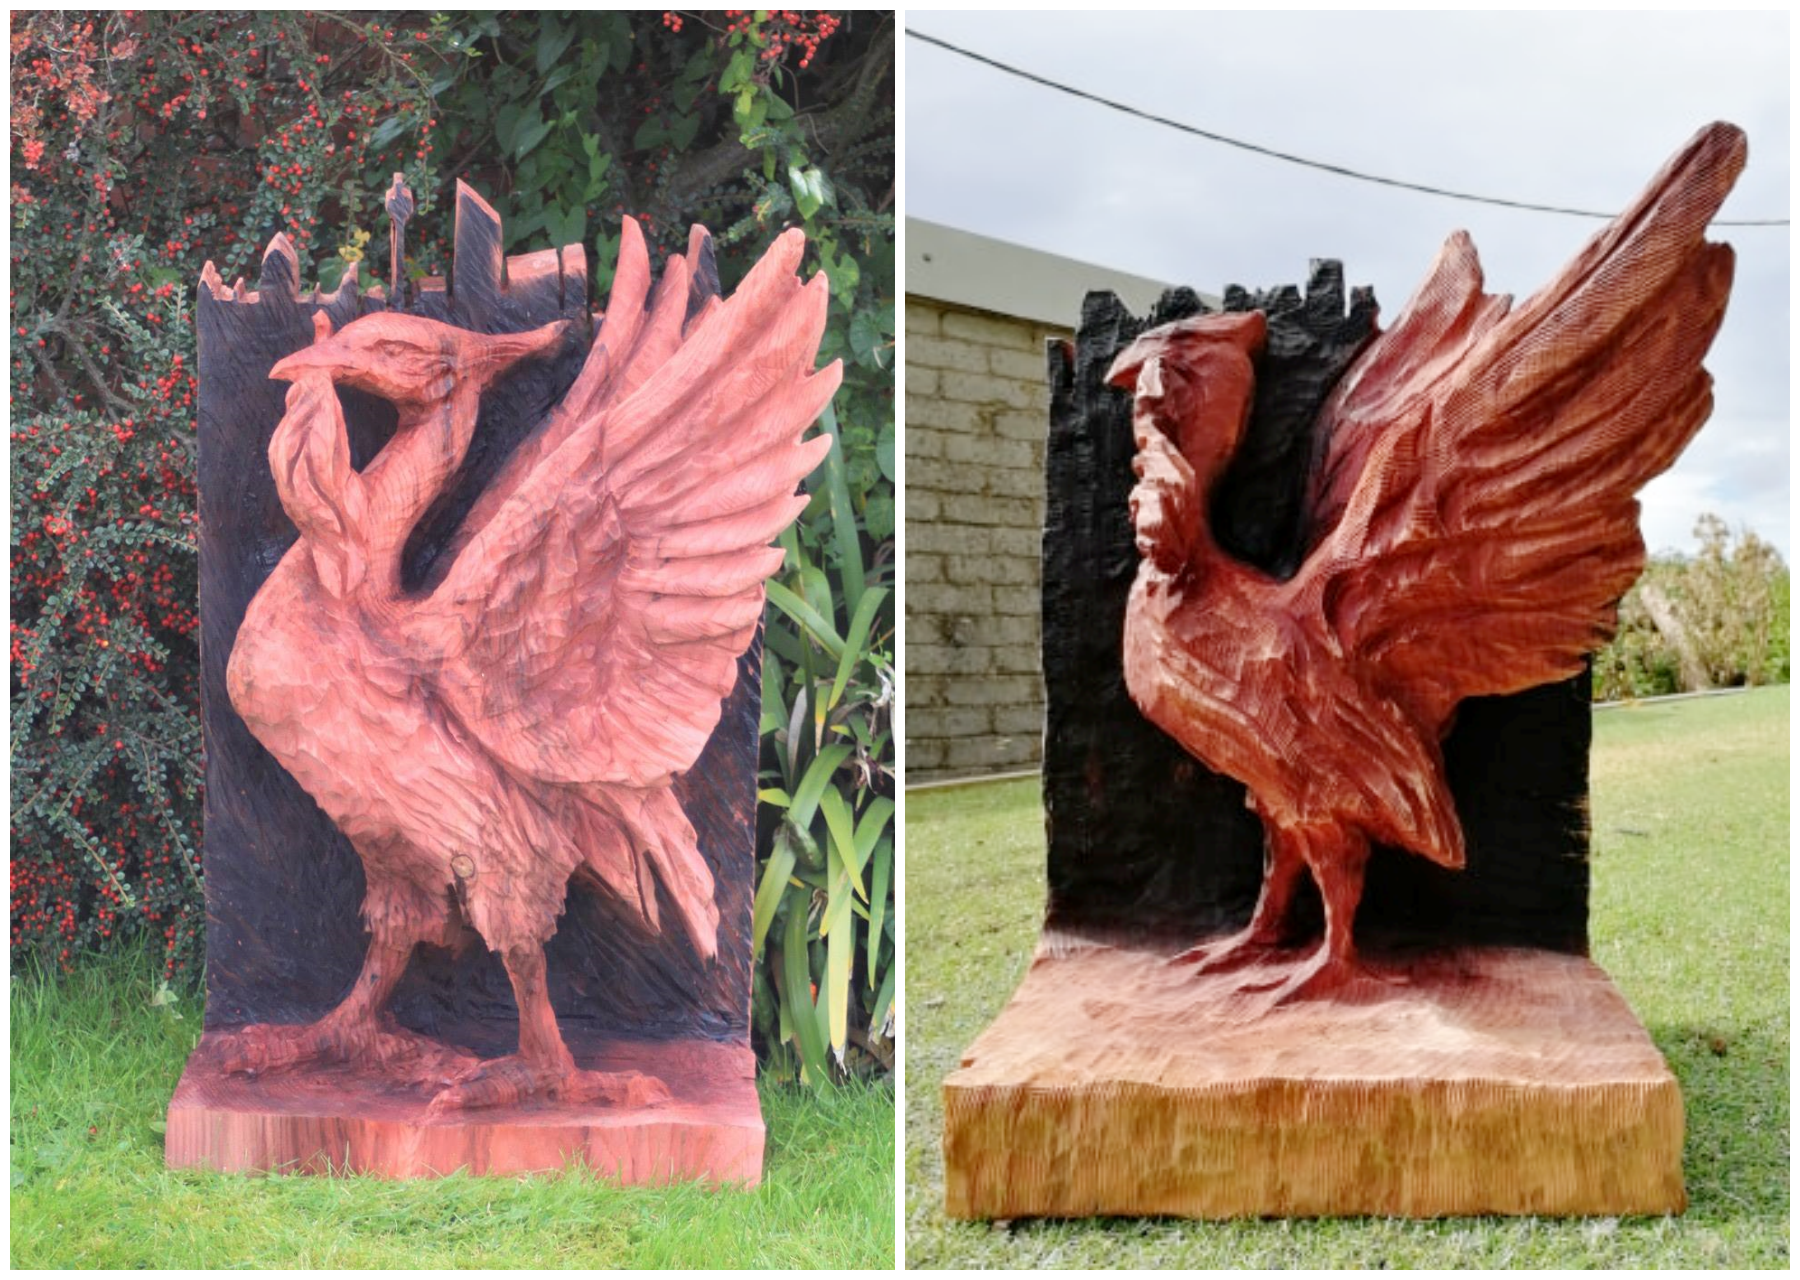 Two wooden sculptures of liverbirds are shown side by side. Sculptures are one of the wood logos and emblems made by Simon O'Rourke